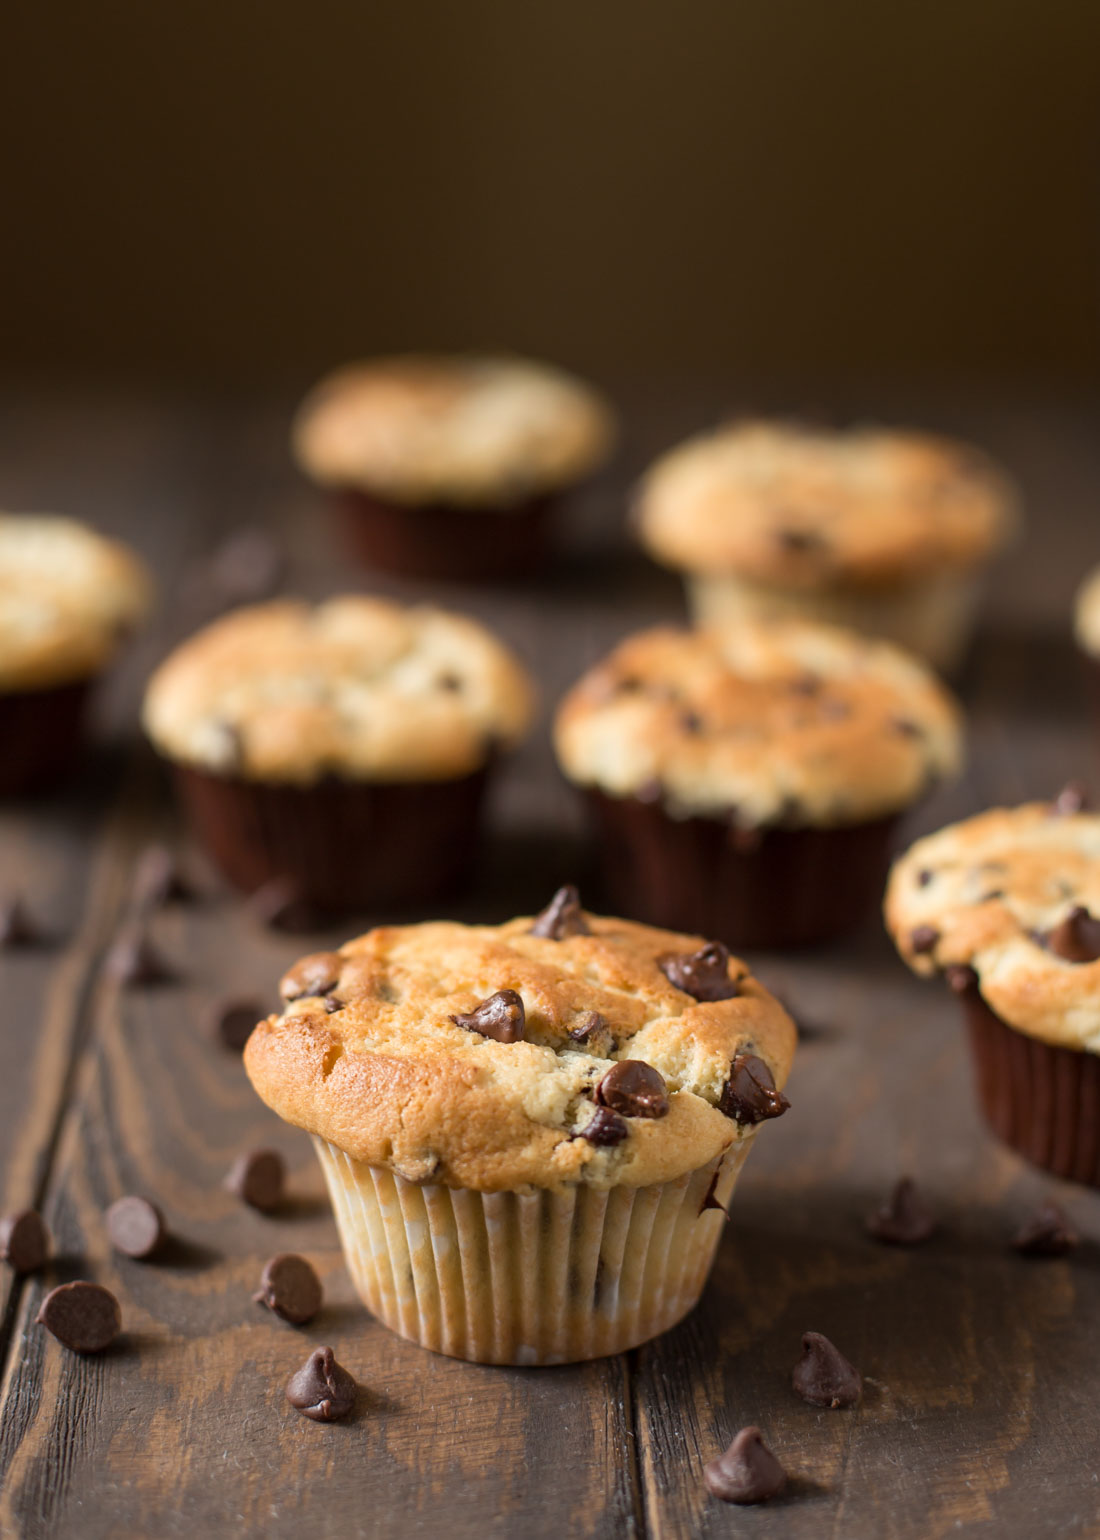 Bakery-style chocolate chip muffins on wood